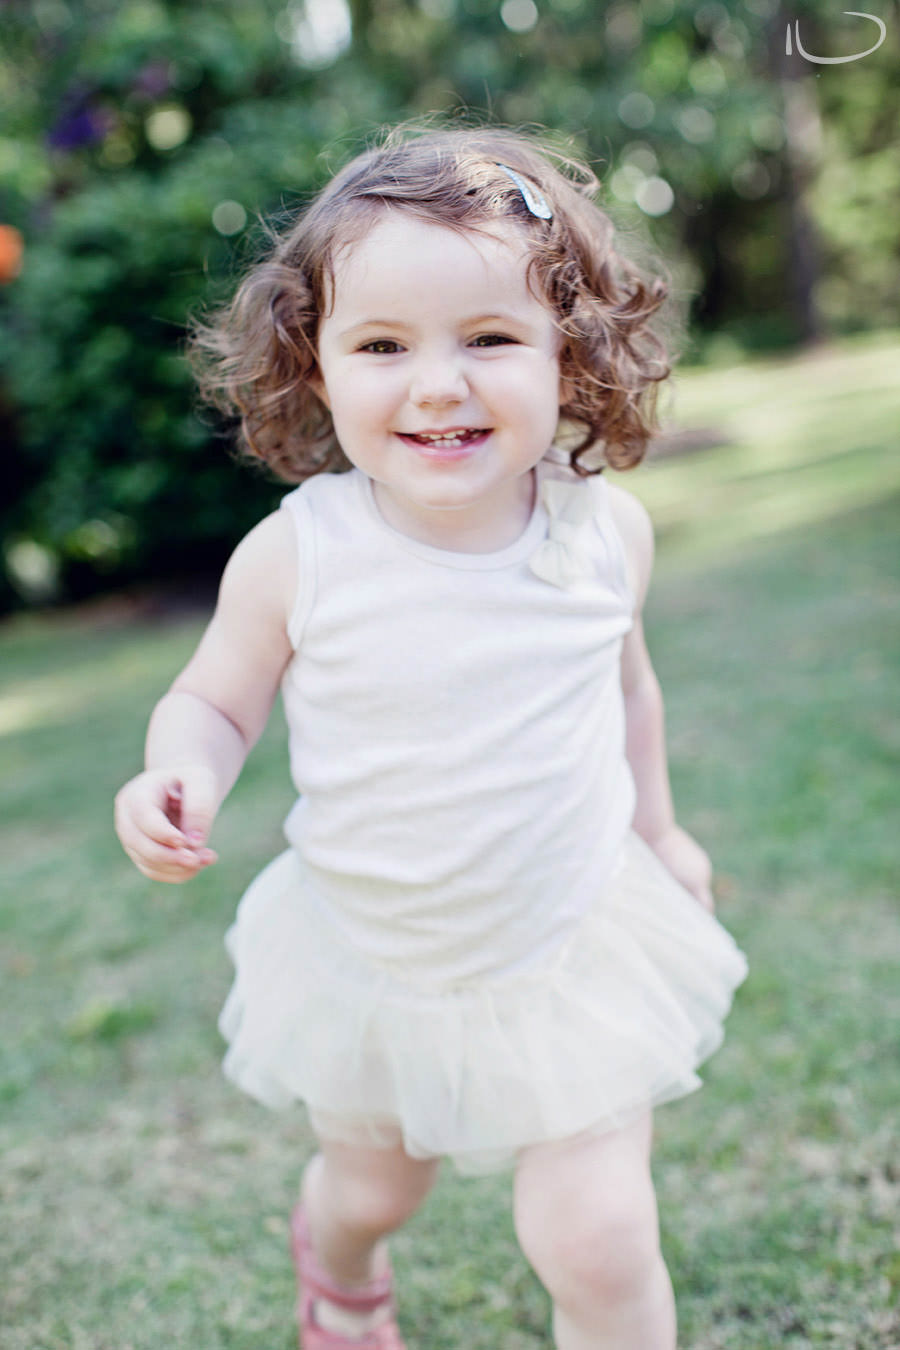 Kurrajong Blue Mountains Sydney Child Photographer: Cute toddler